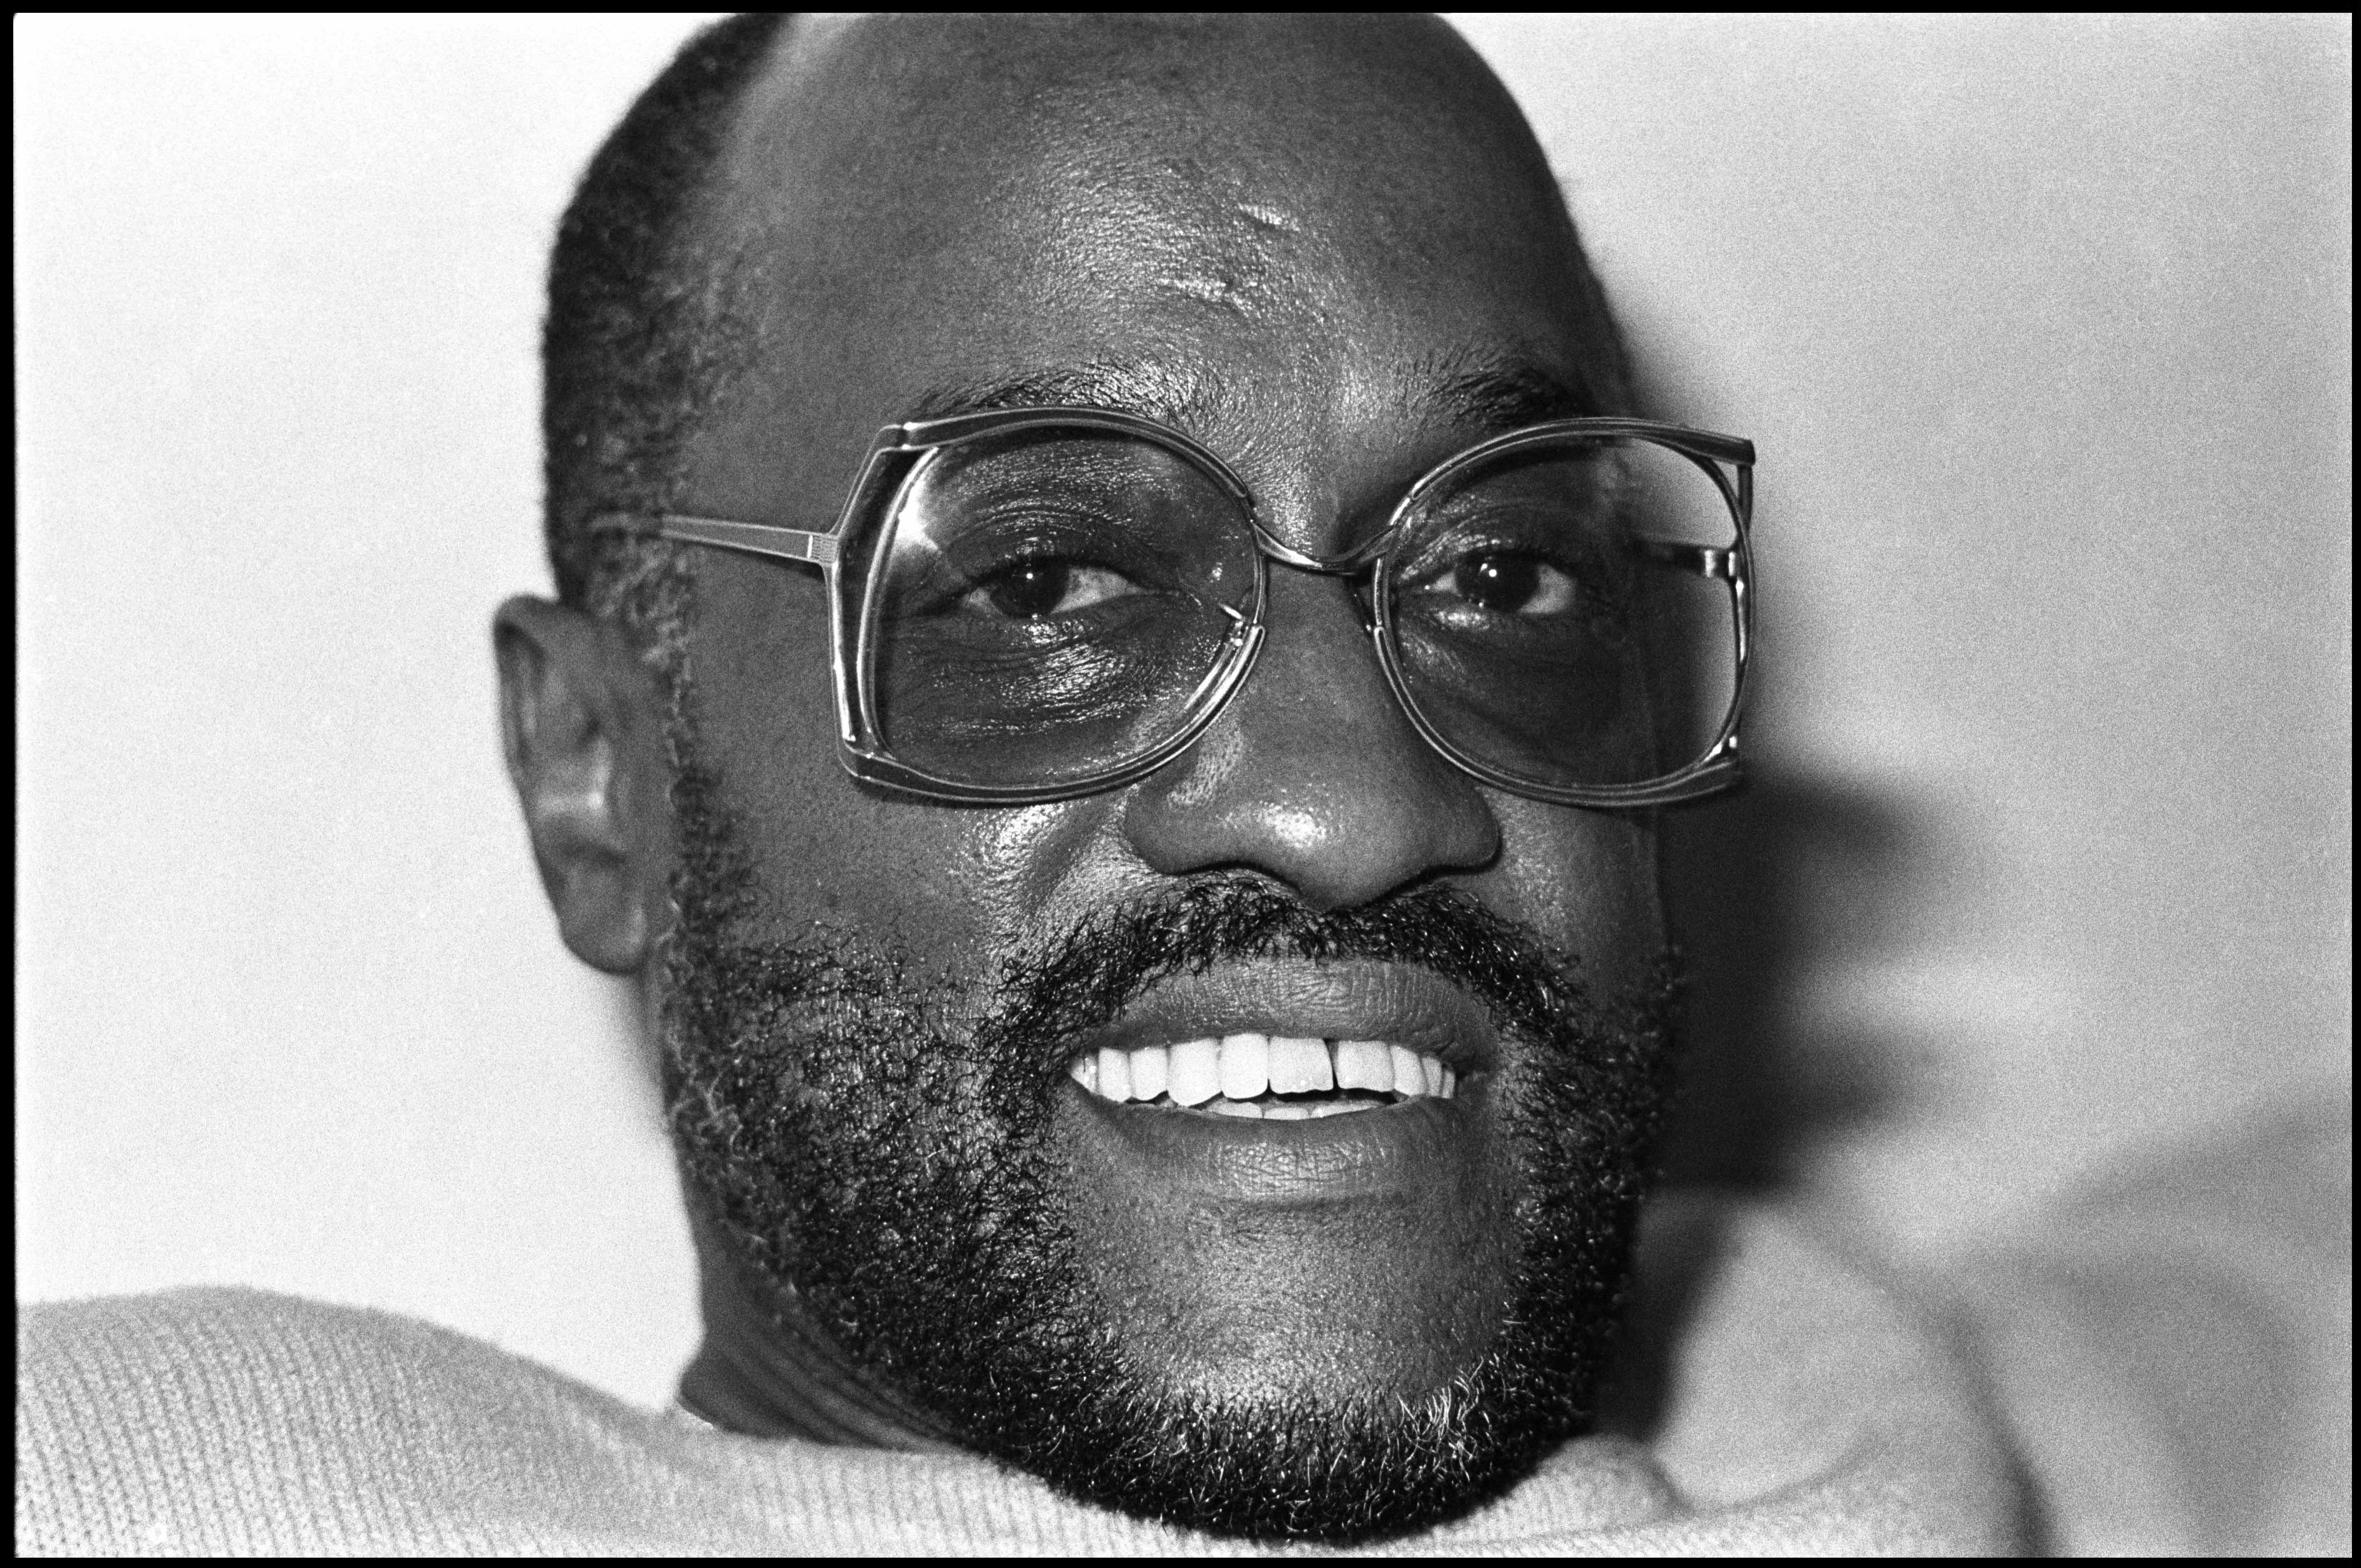 Soul singer Billy Paul poses for a portrait at his home in New Jersey on June 16 1985. (Photo by David Corio/Michael Ochs Archive/Getty Images)